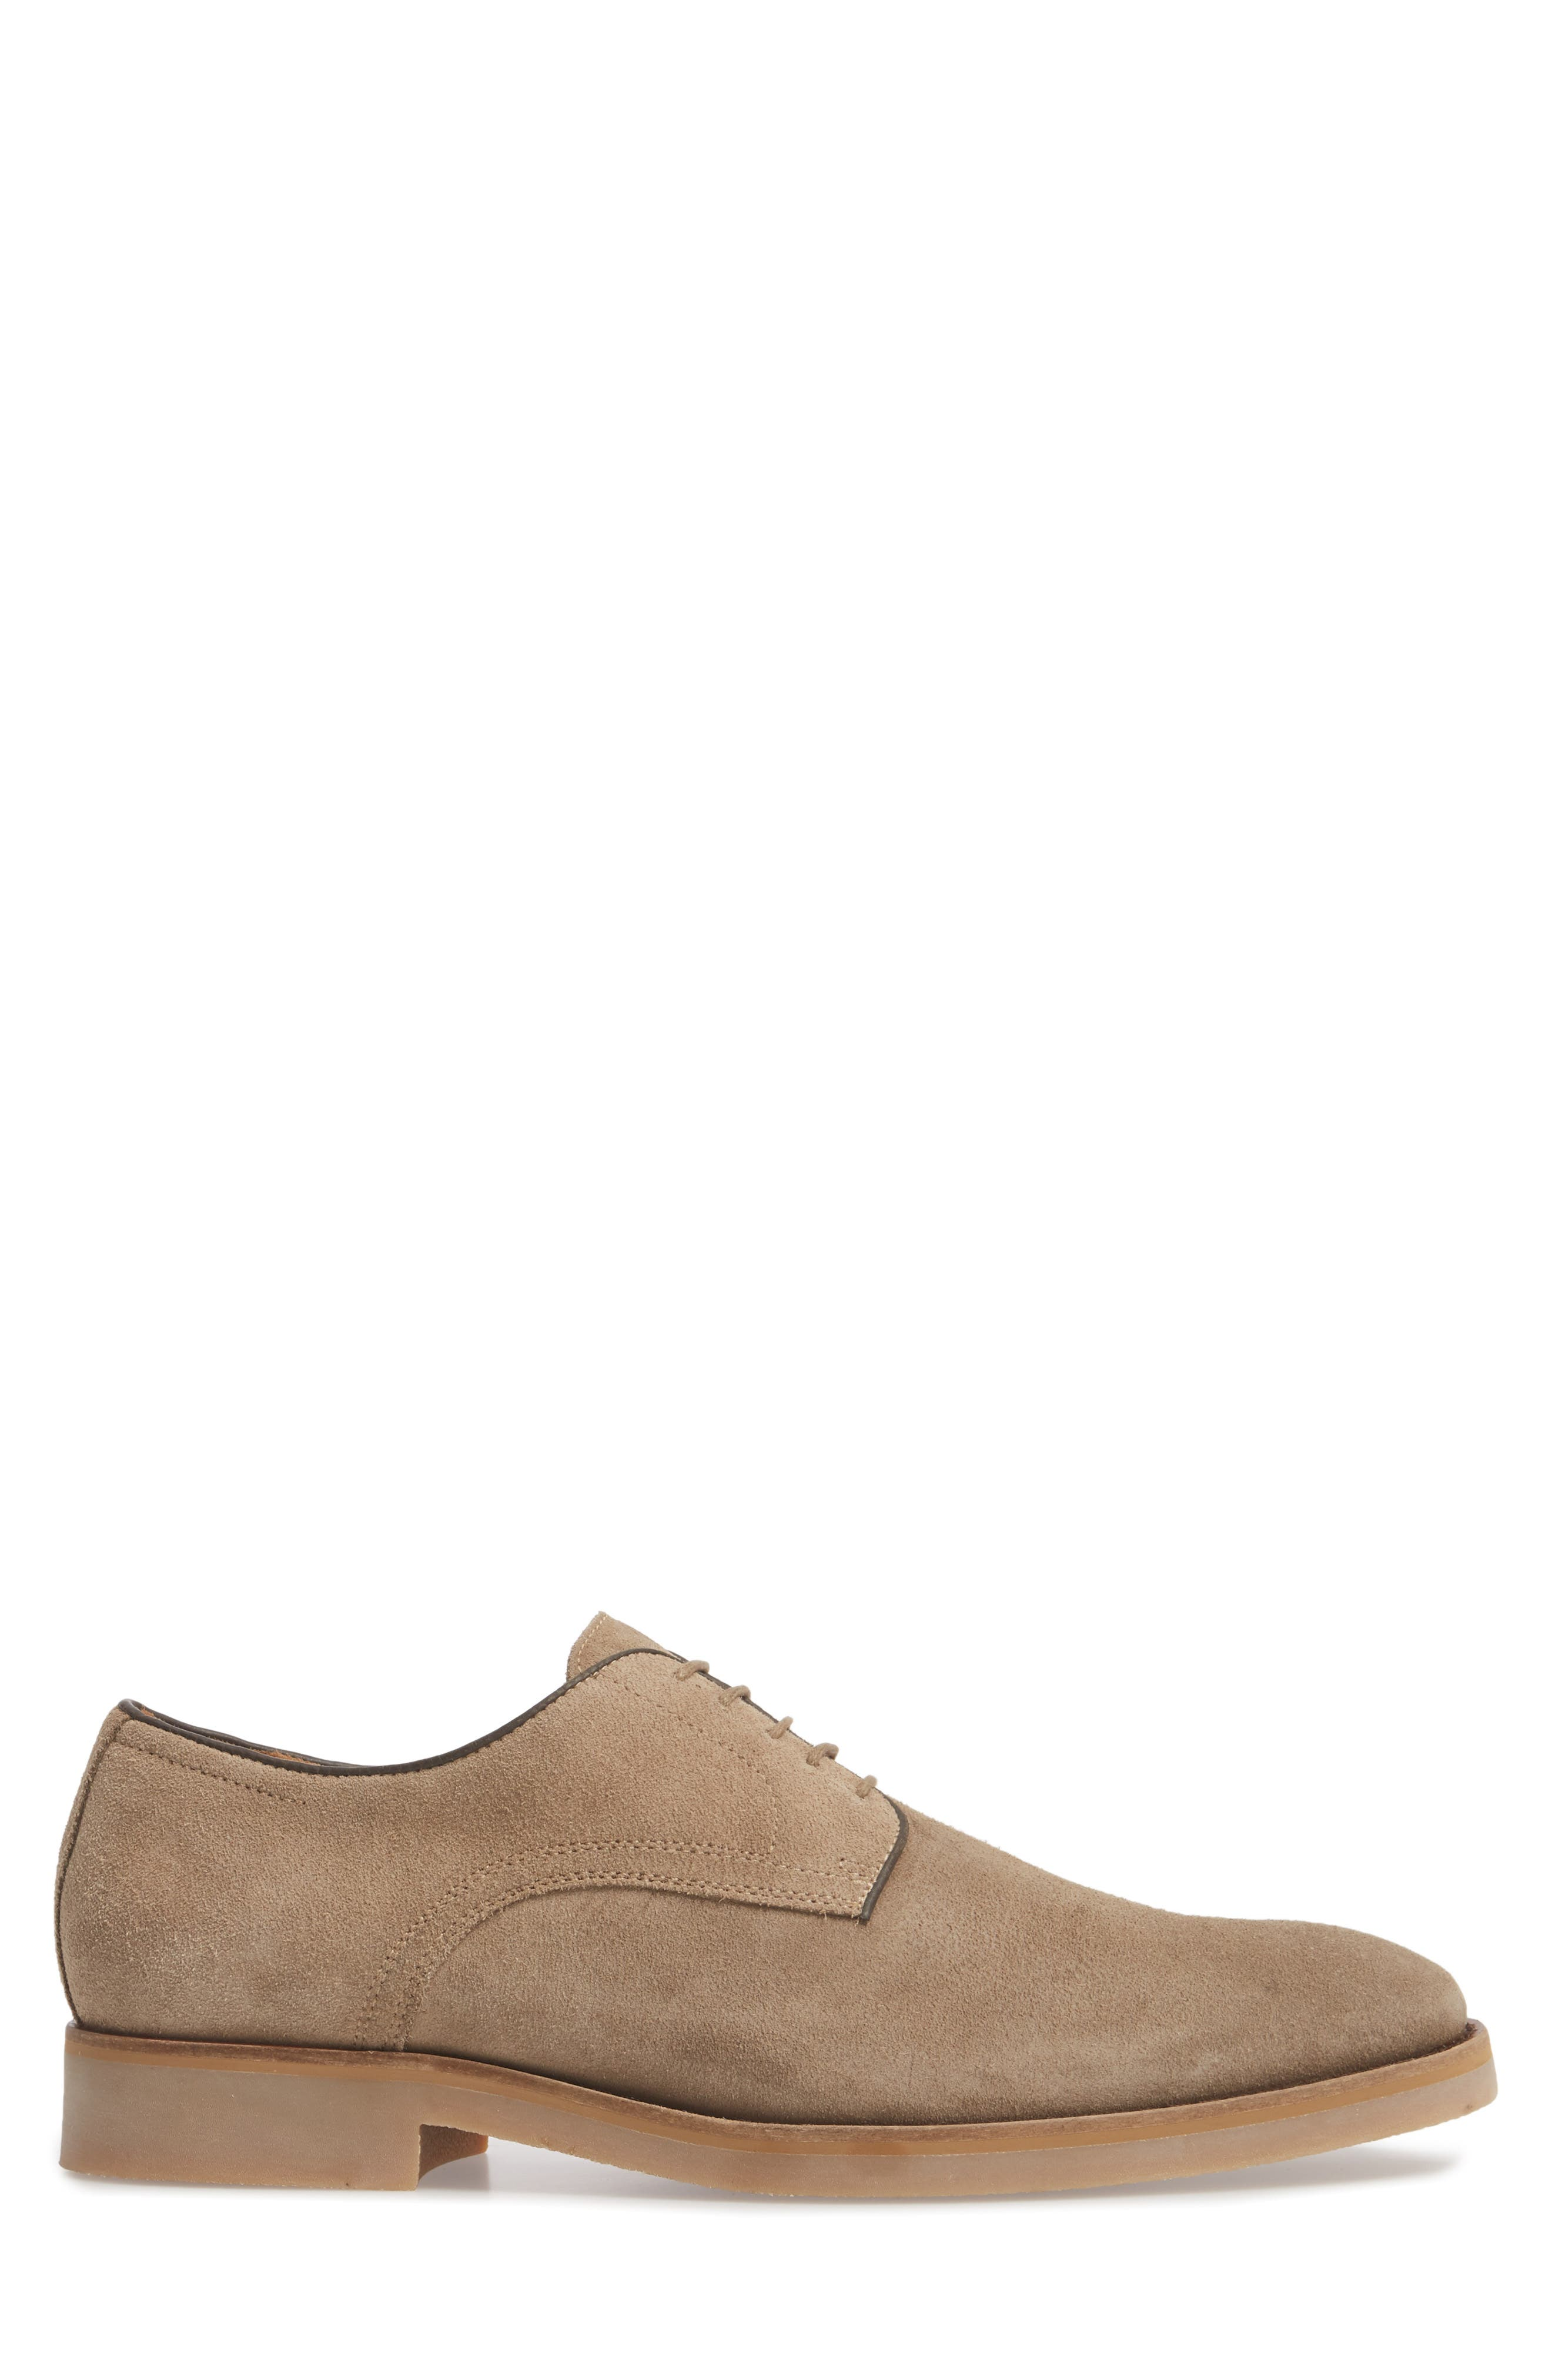 Santino Plain Toe Derby,                             Alternate thumbnail 3, color,                             Taupe Suede